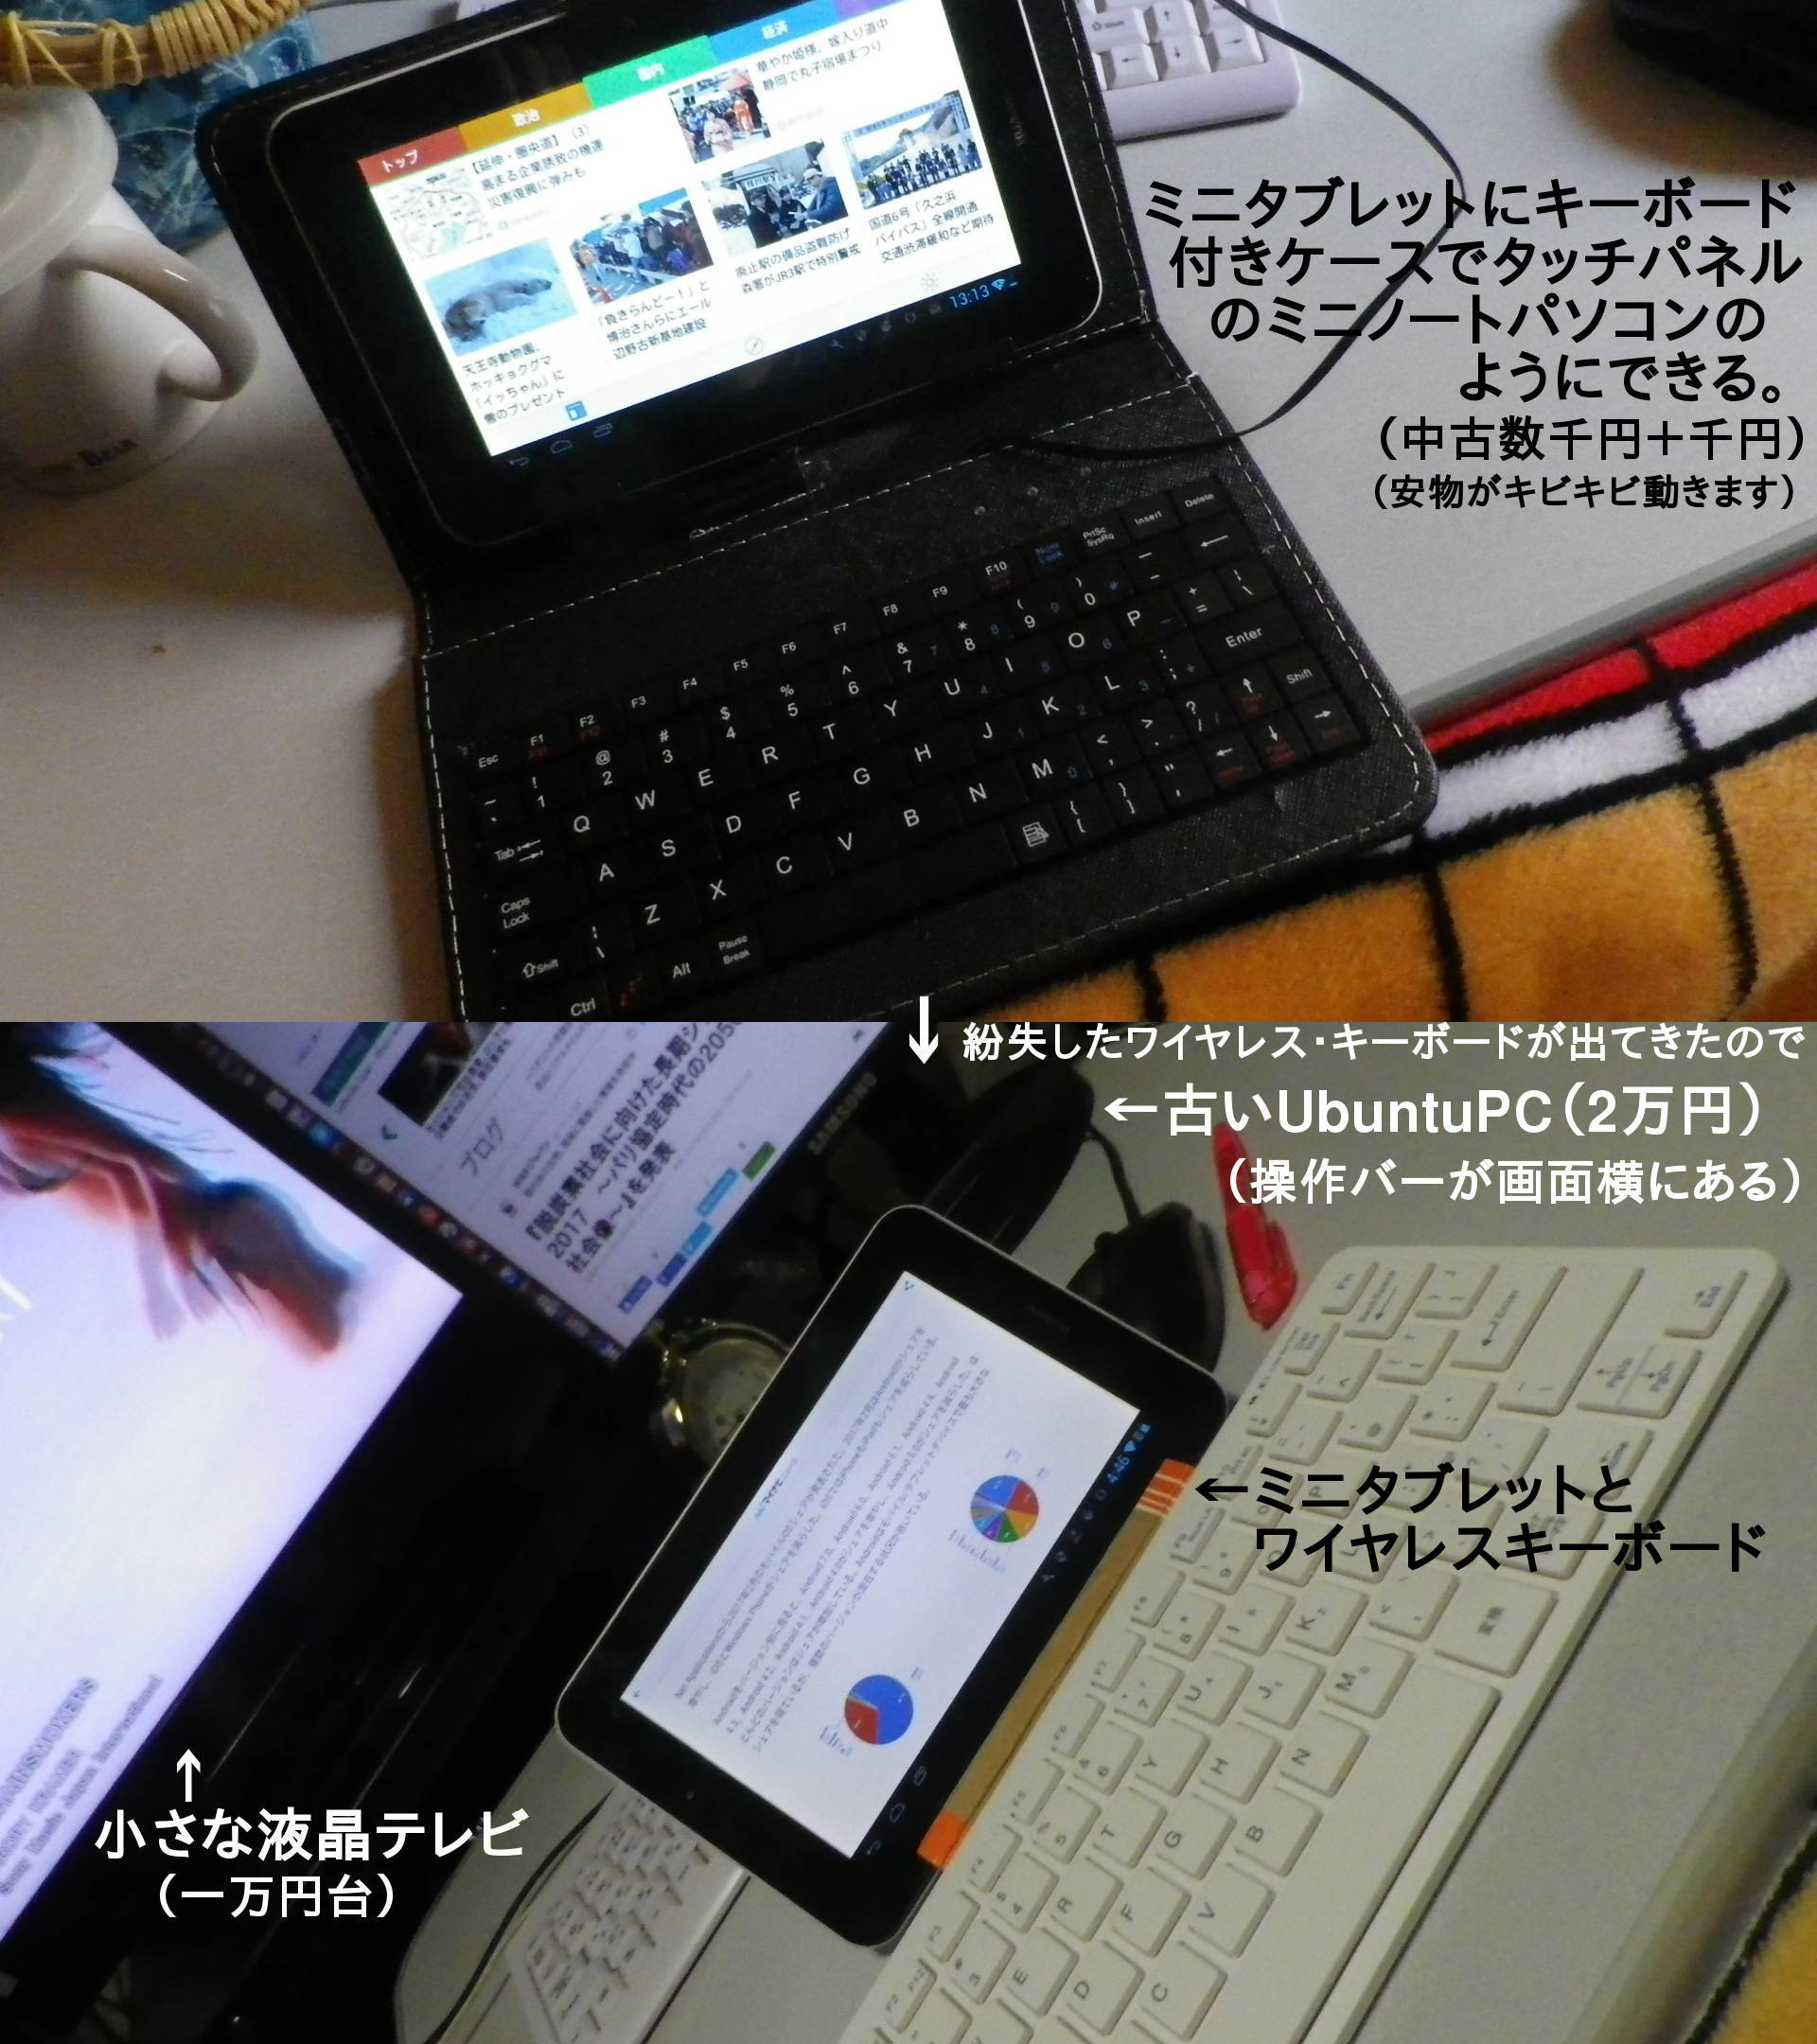 tablet_like_a_notebook_computer_etc.jpg